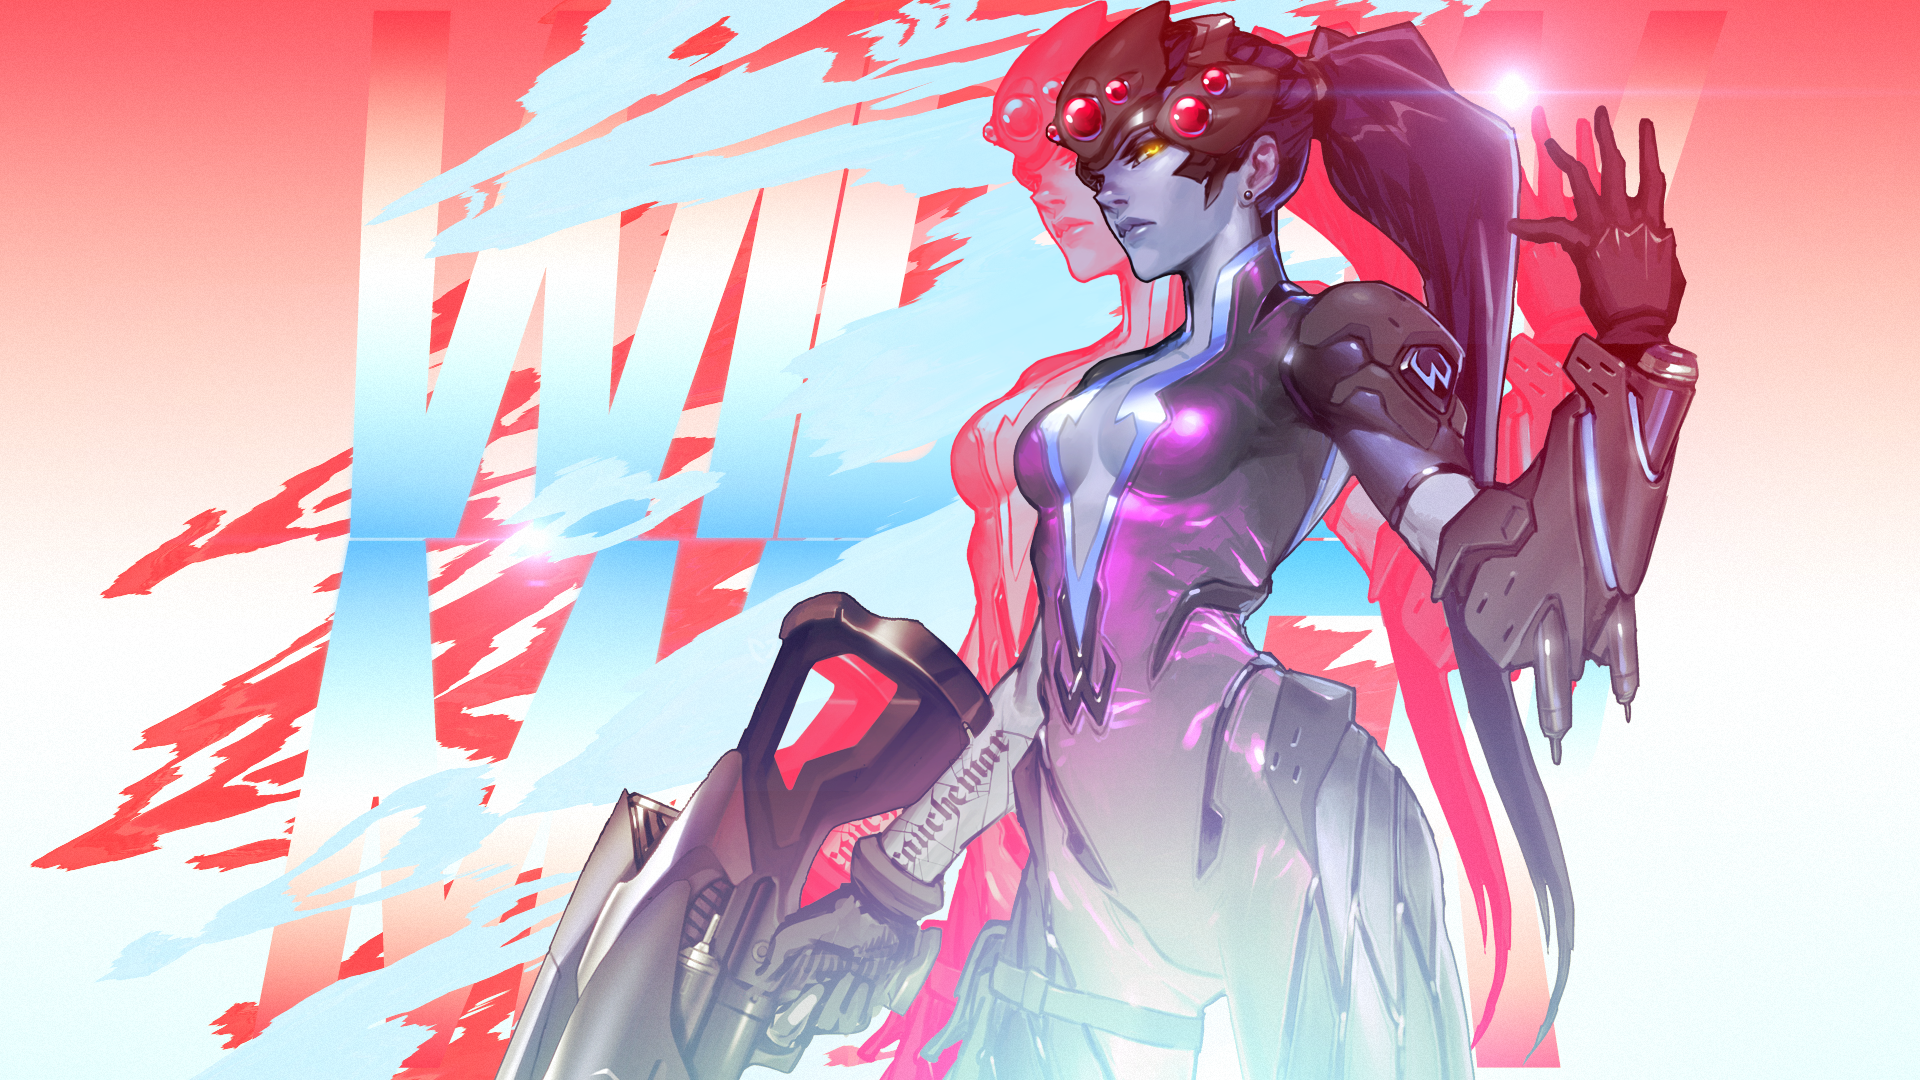 Overwatch - Widowmaker Wallpaper by MikoyaNx